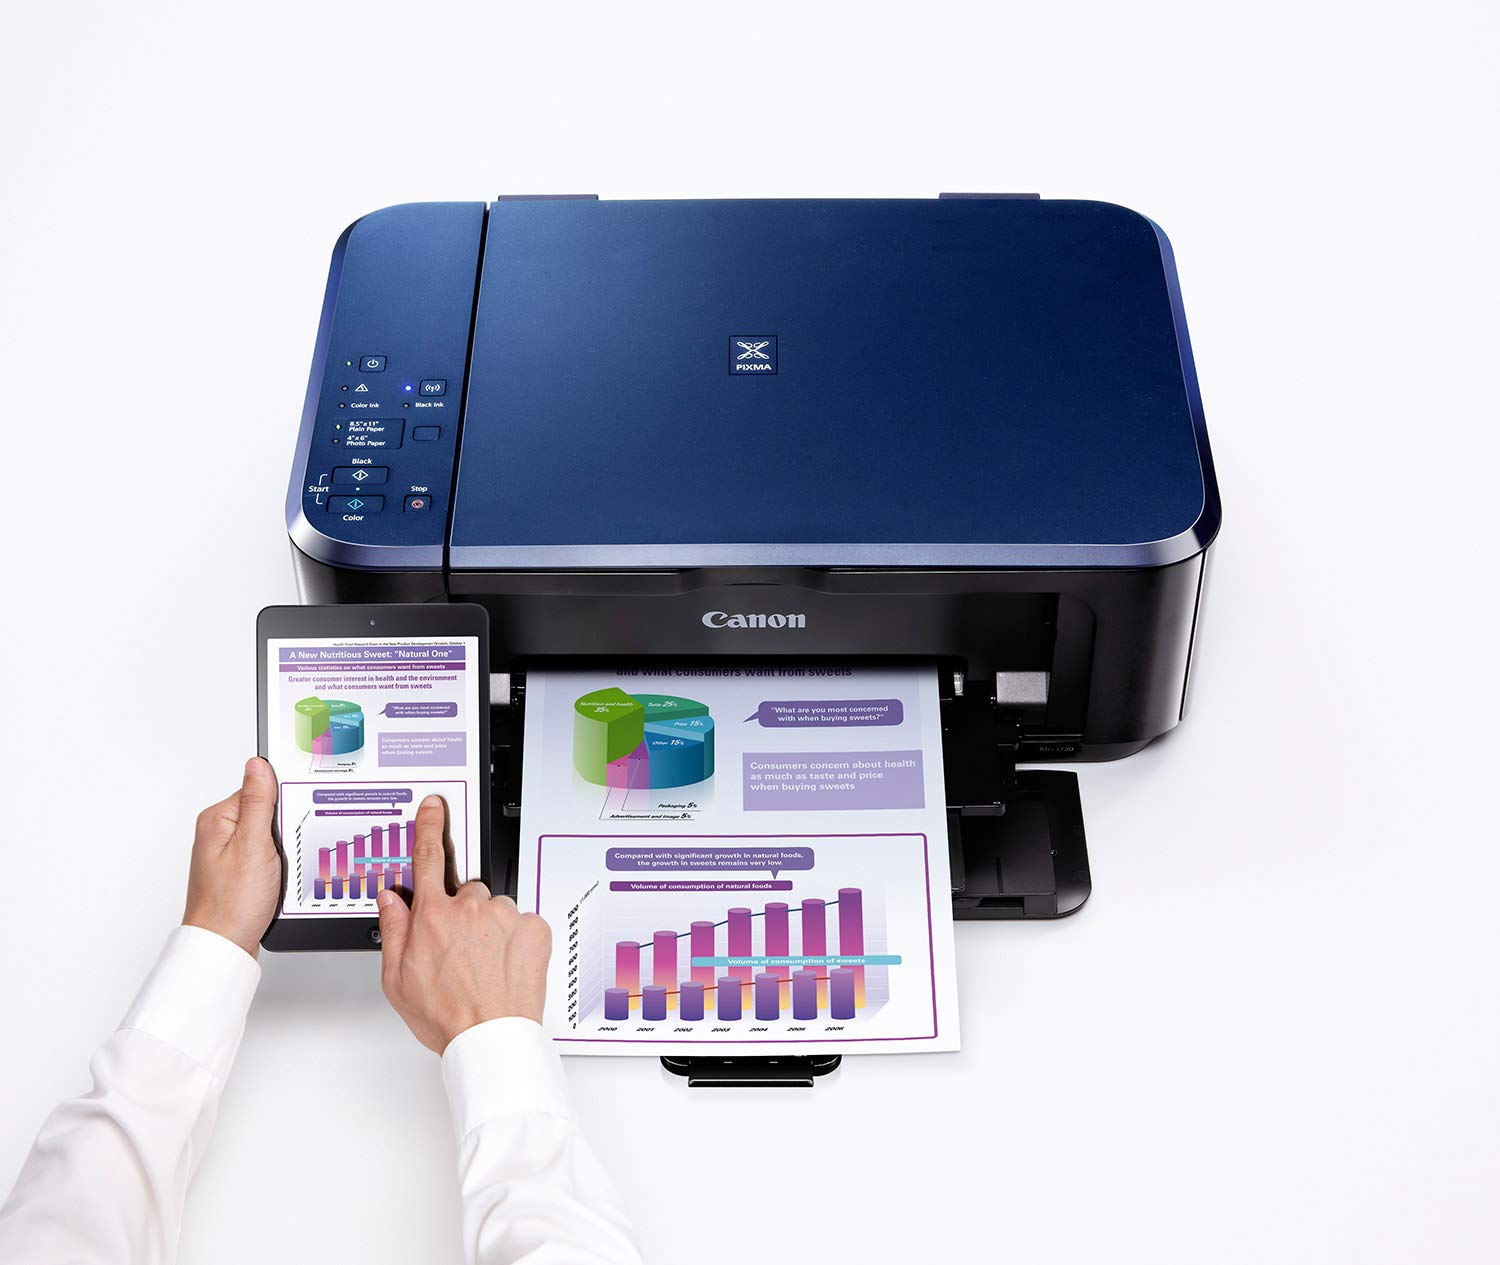 Canon E560 Multifunction Wireless Ink Efficient Colour Printer With Auto Duplex Printing Pixma E510 Inkjet Buy Online At Low Prices In India Reviews